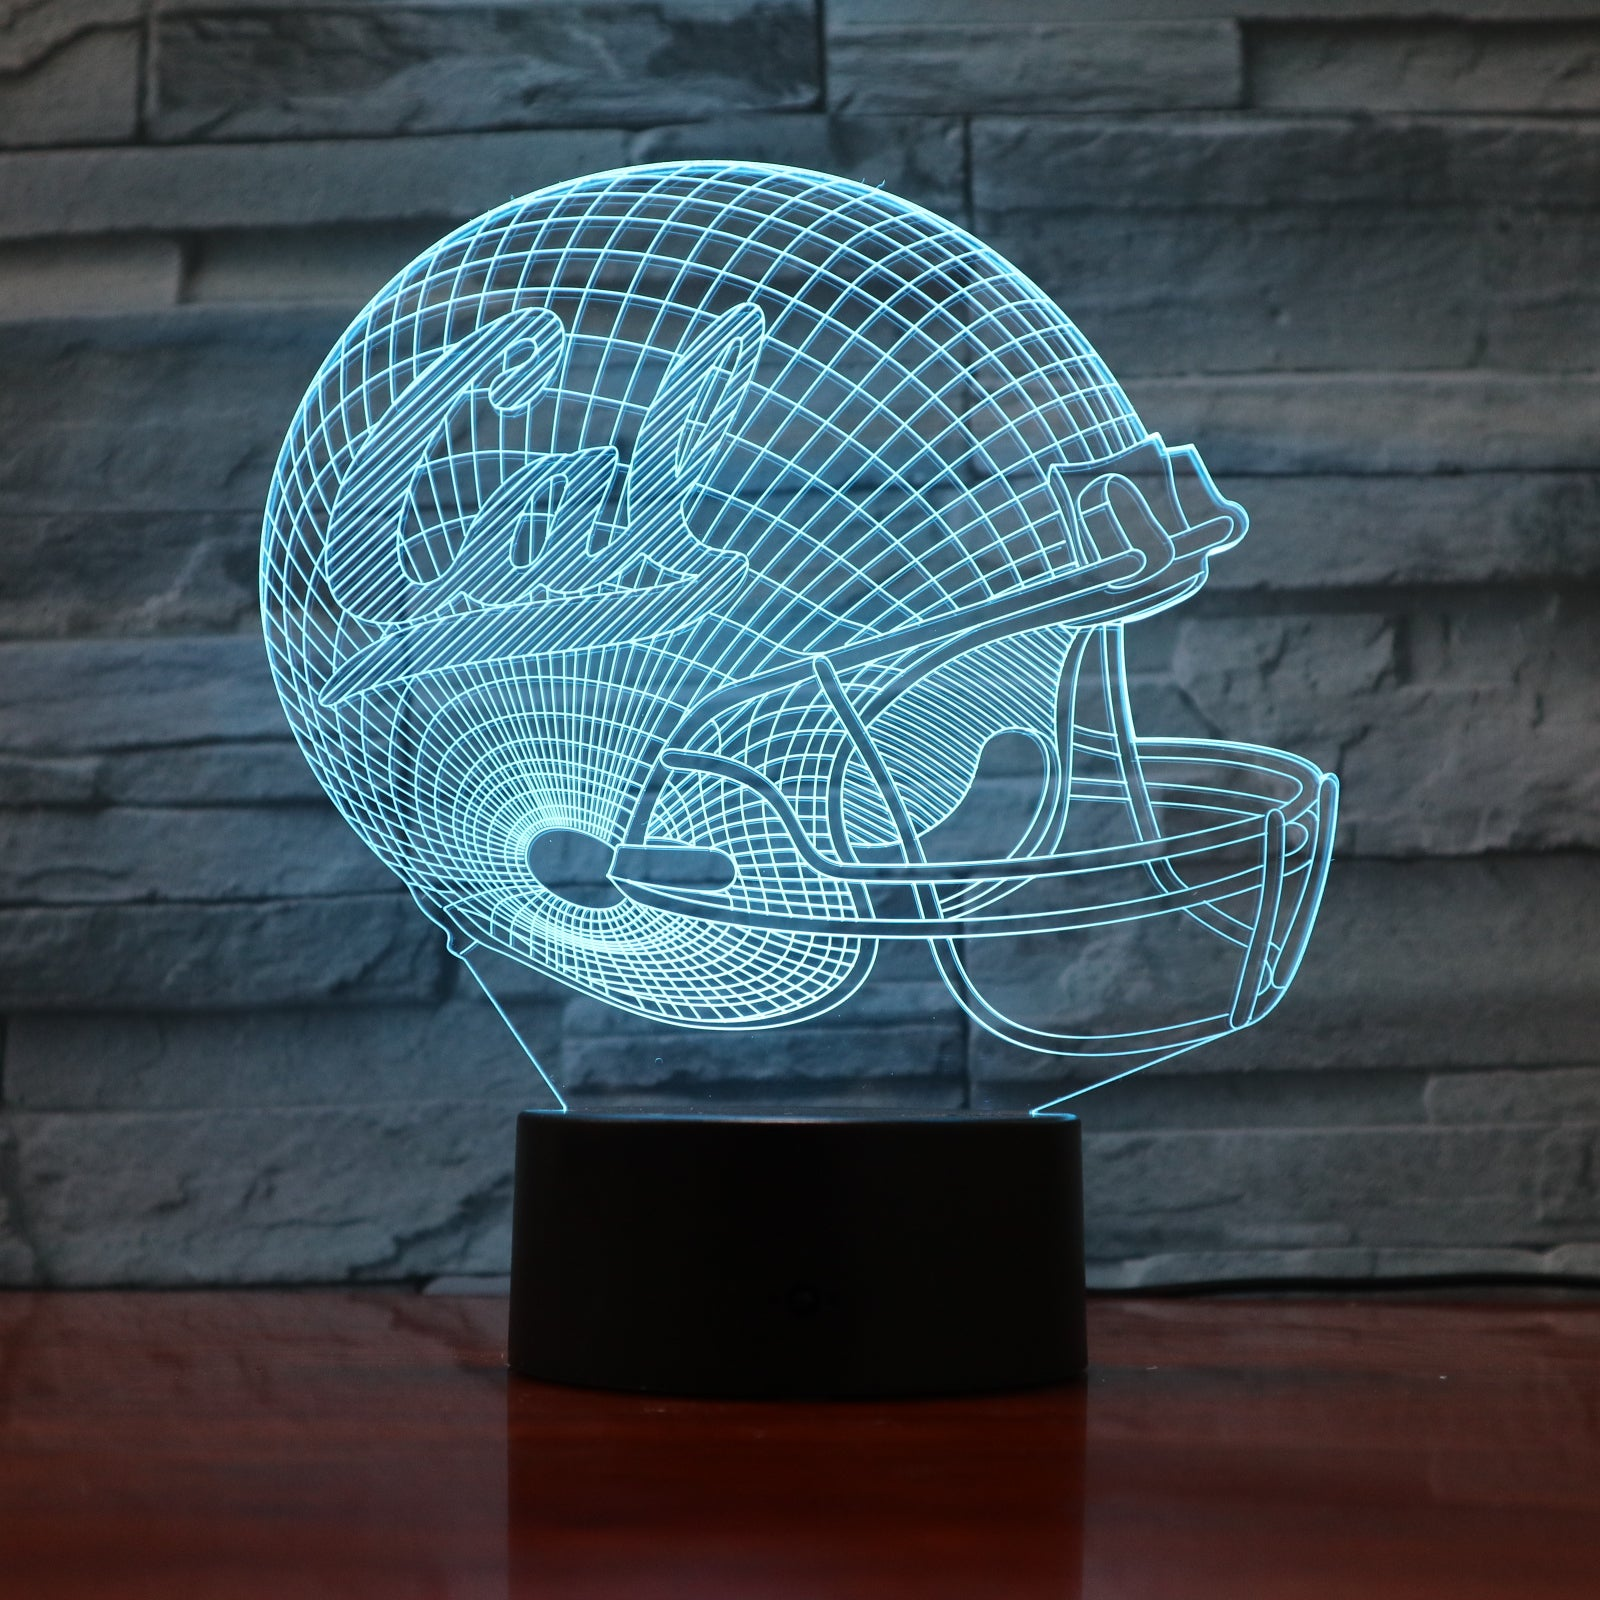 American Football Helmet 5 - 3D Optical Illusion LED Lamp Hologram